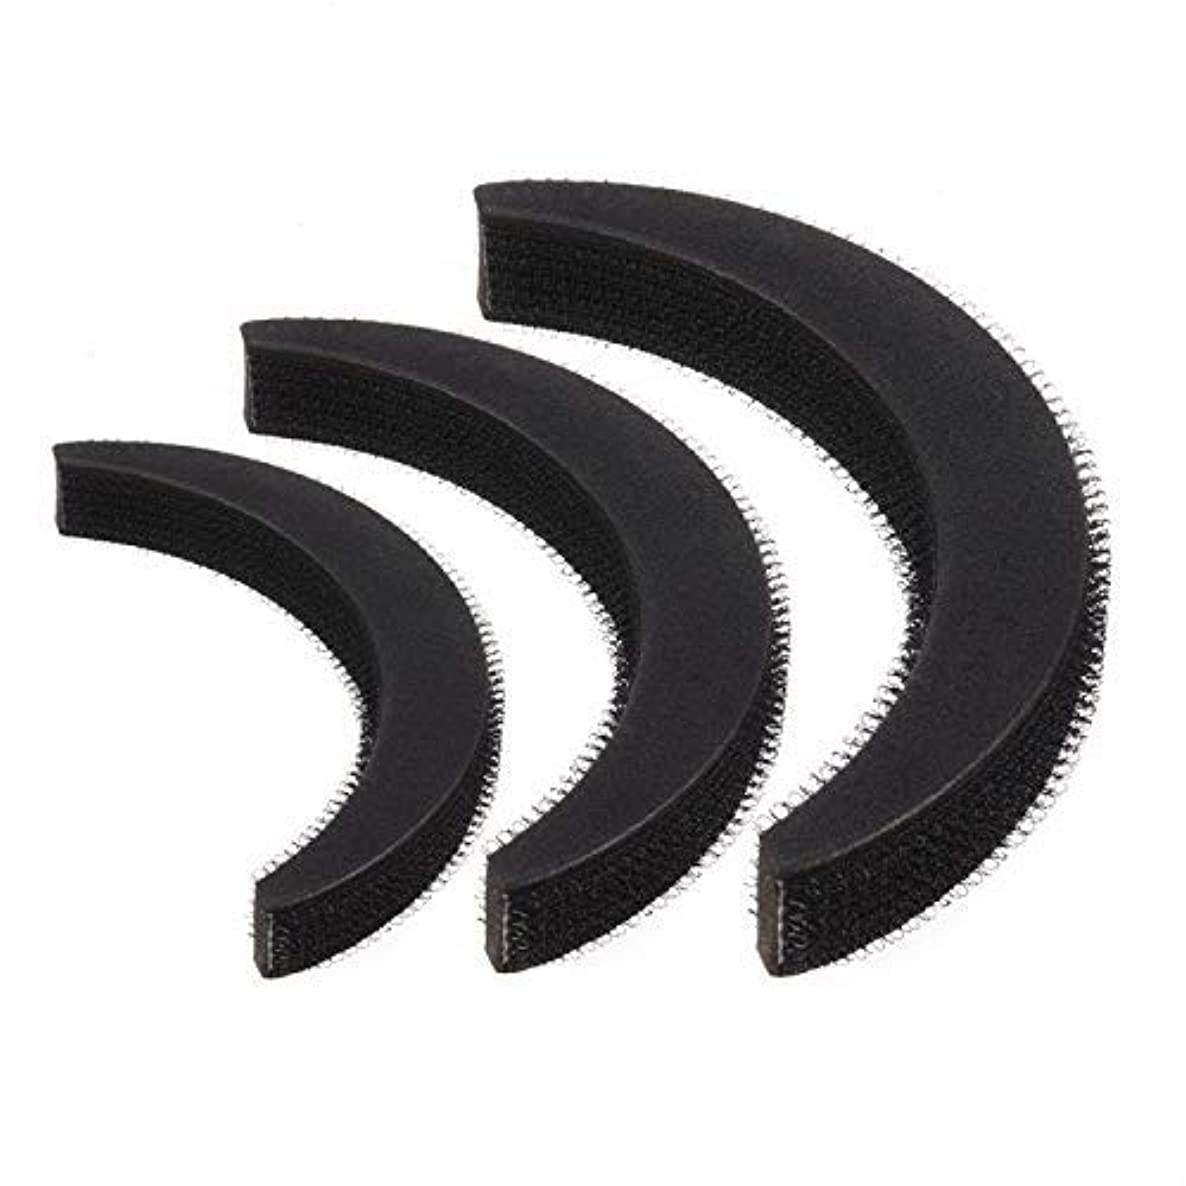 Feeko Hair Bump,3psc Hair Bumpit Roll Honeycomb Hair Bump Hair Pad Haight Hairdressing Set Tool Black [並行輸入品]